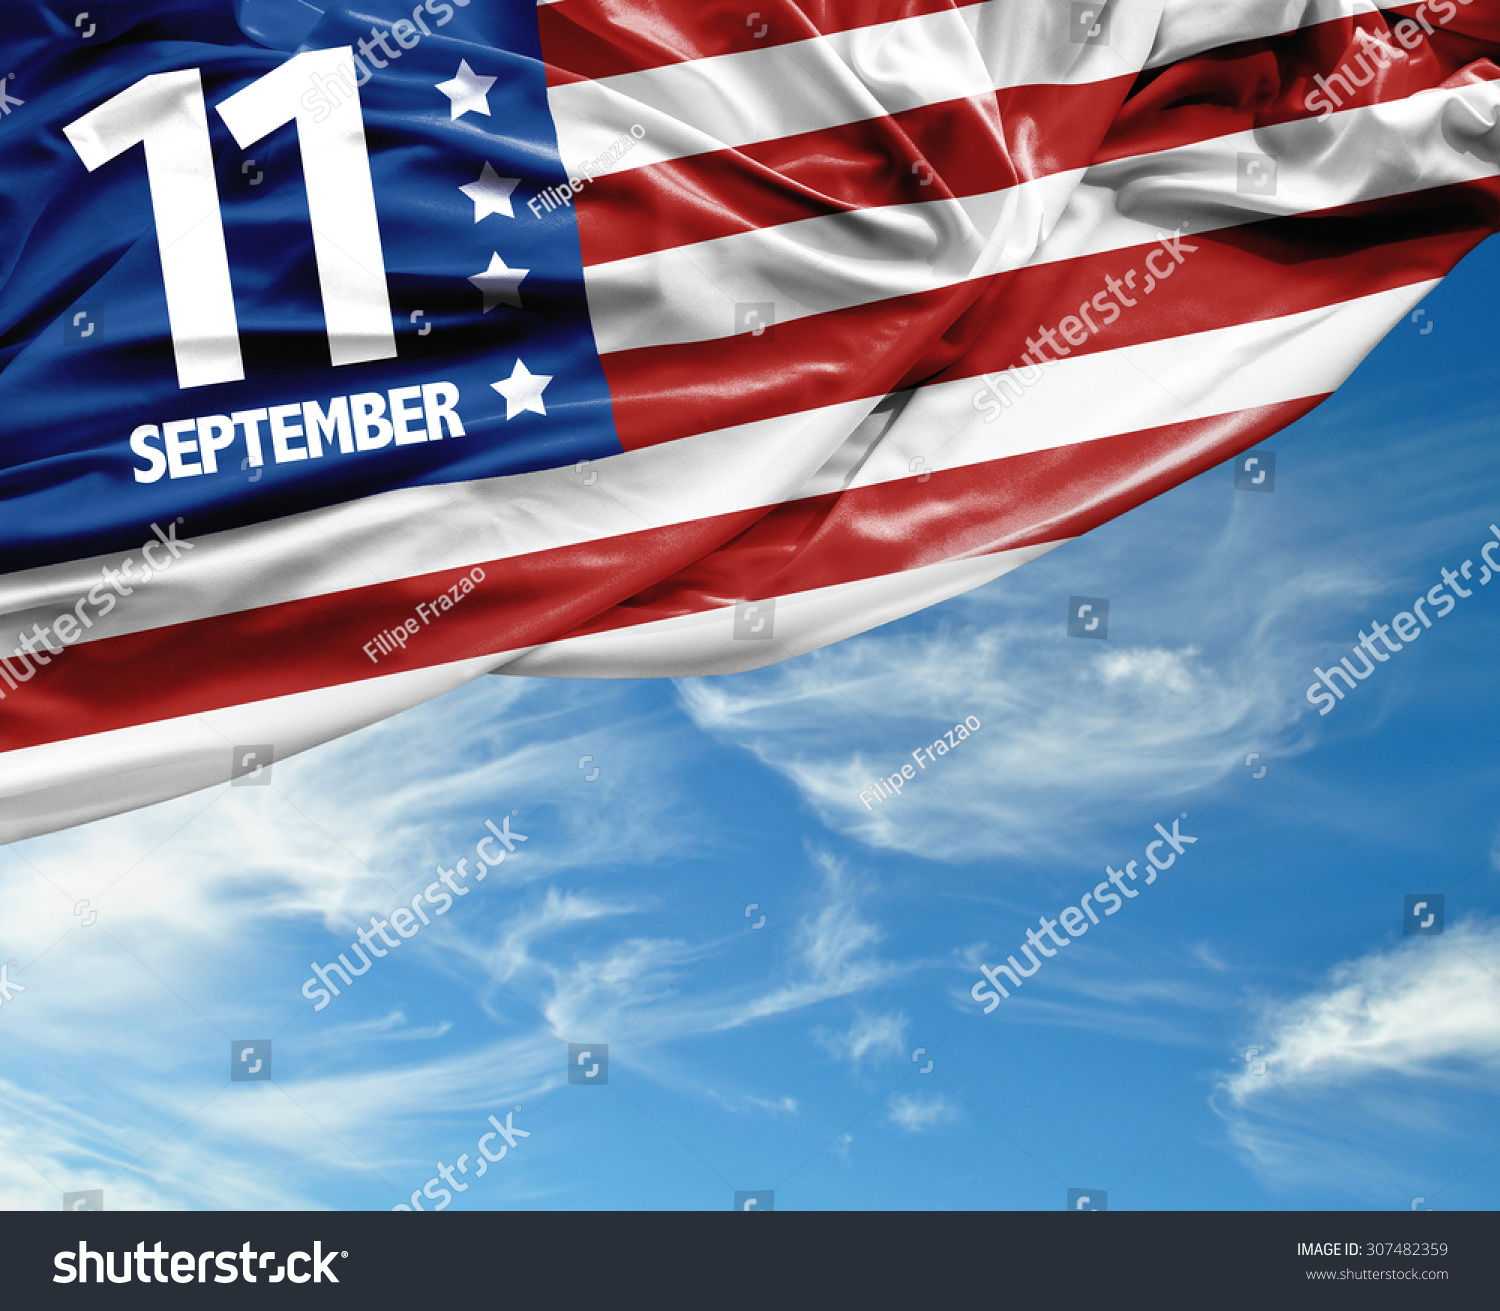 911 Patriot Day September 11 Stock Photo